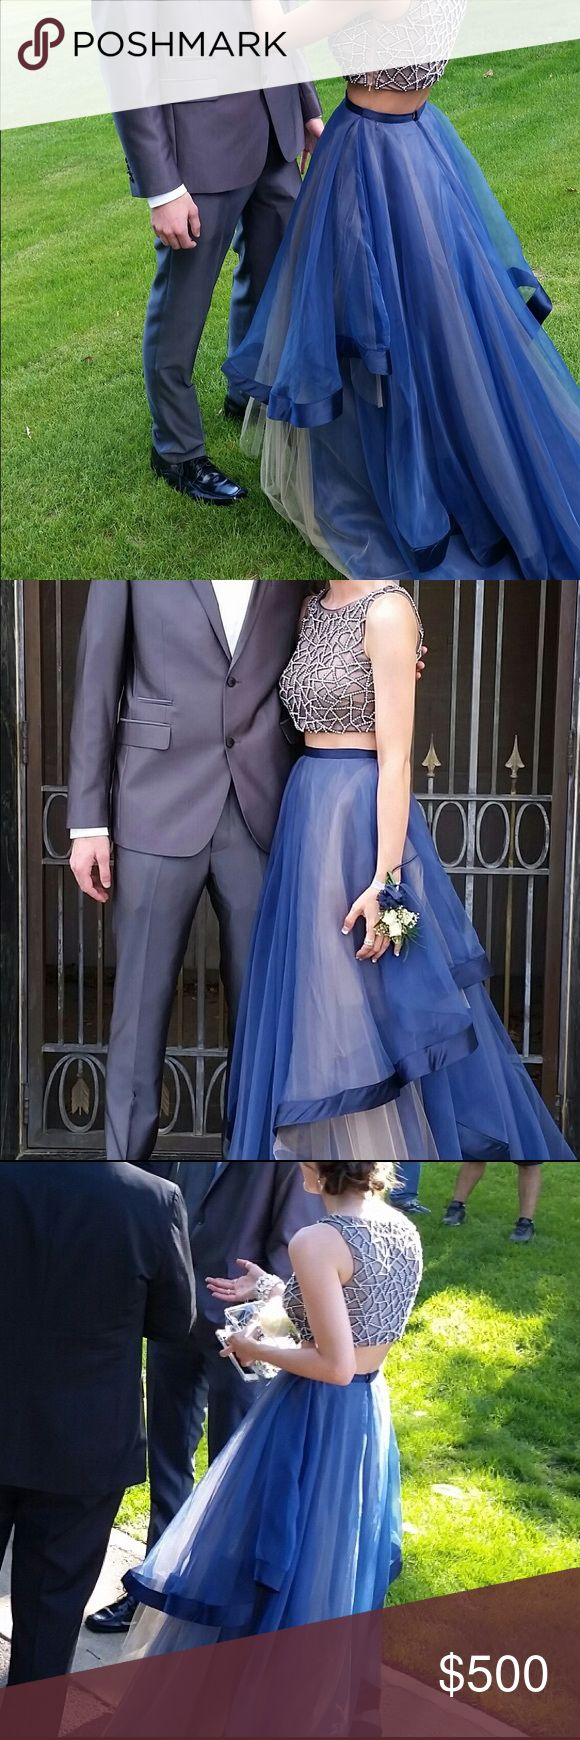 Dark Blue/Navy Prom Dress Two piece embellished (top) prom dress with dark ribbon edge bottom. Worn once, in great condition. I got SOOO many compliments on this! Terani Couture Dresses Prom